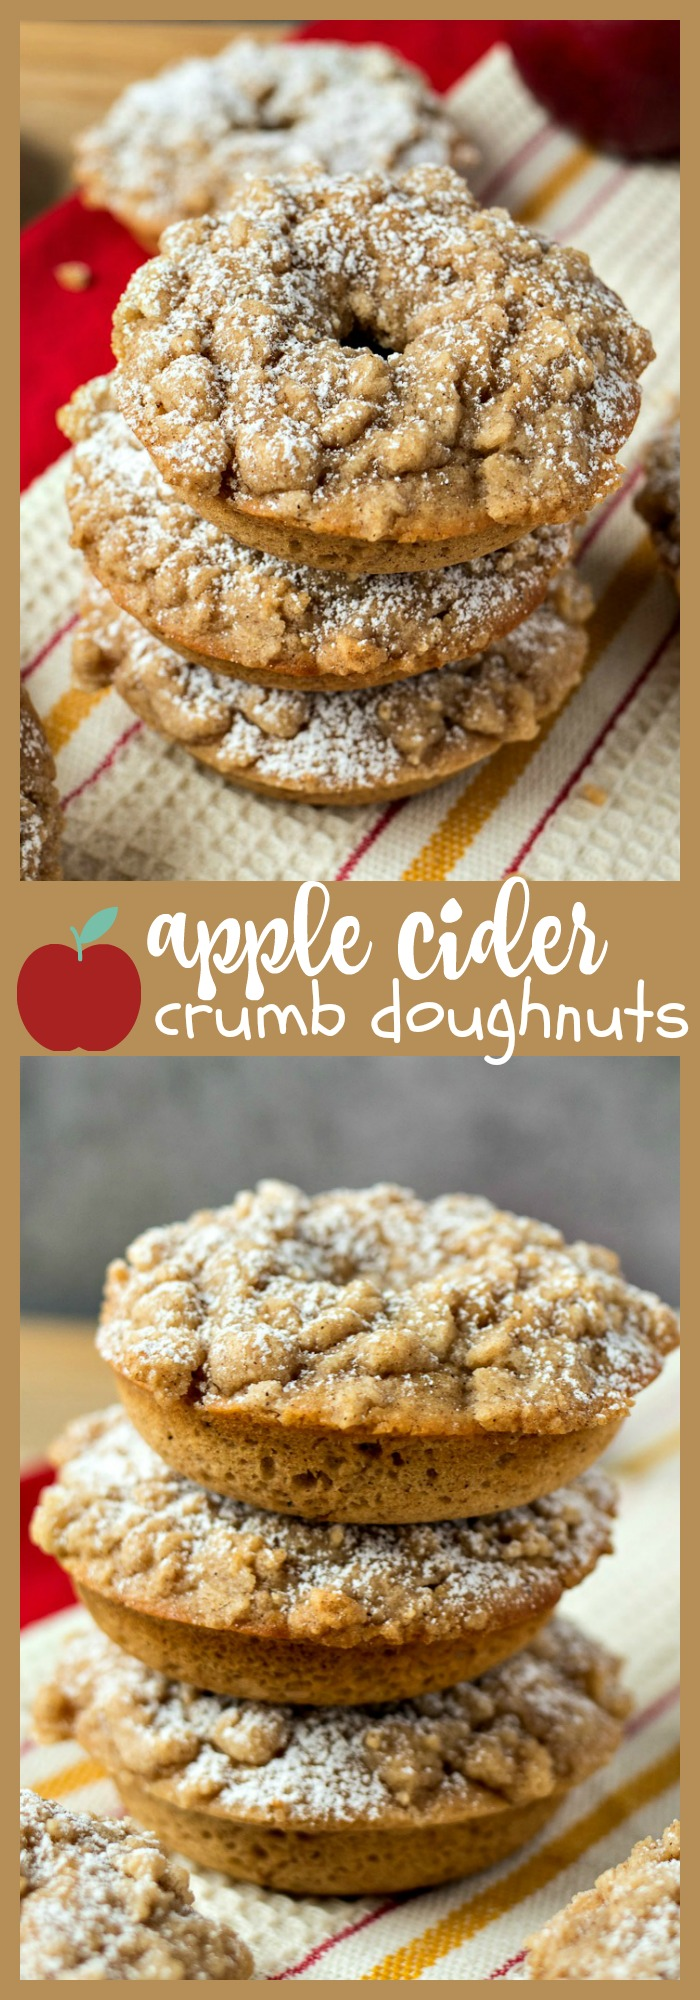 Apple Cider Crumb Doughnuts photo collage